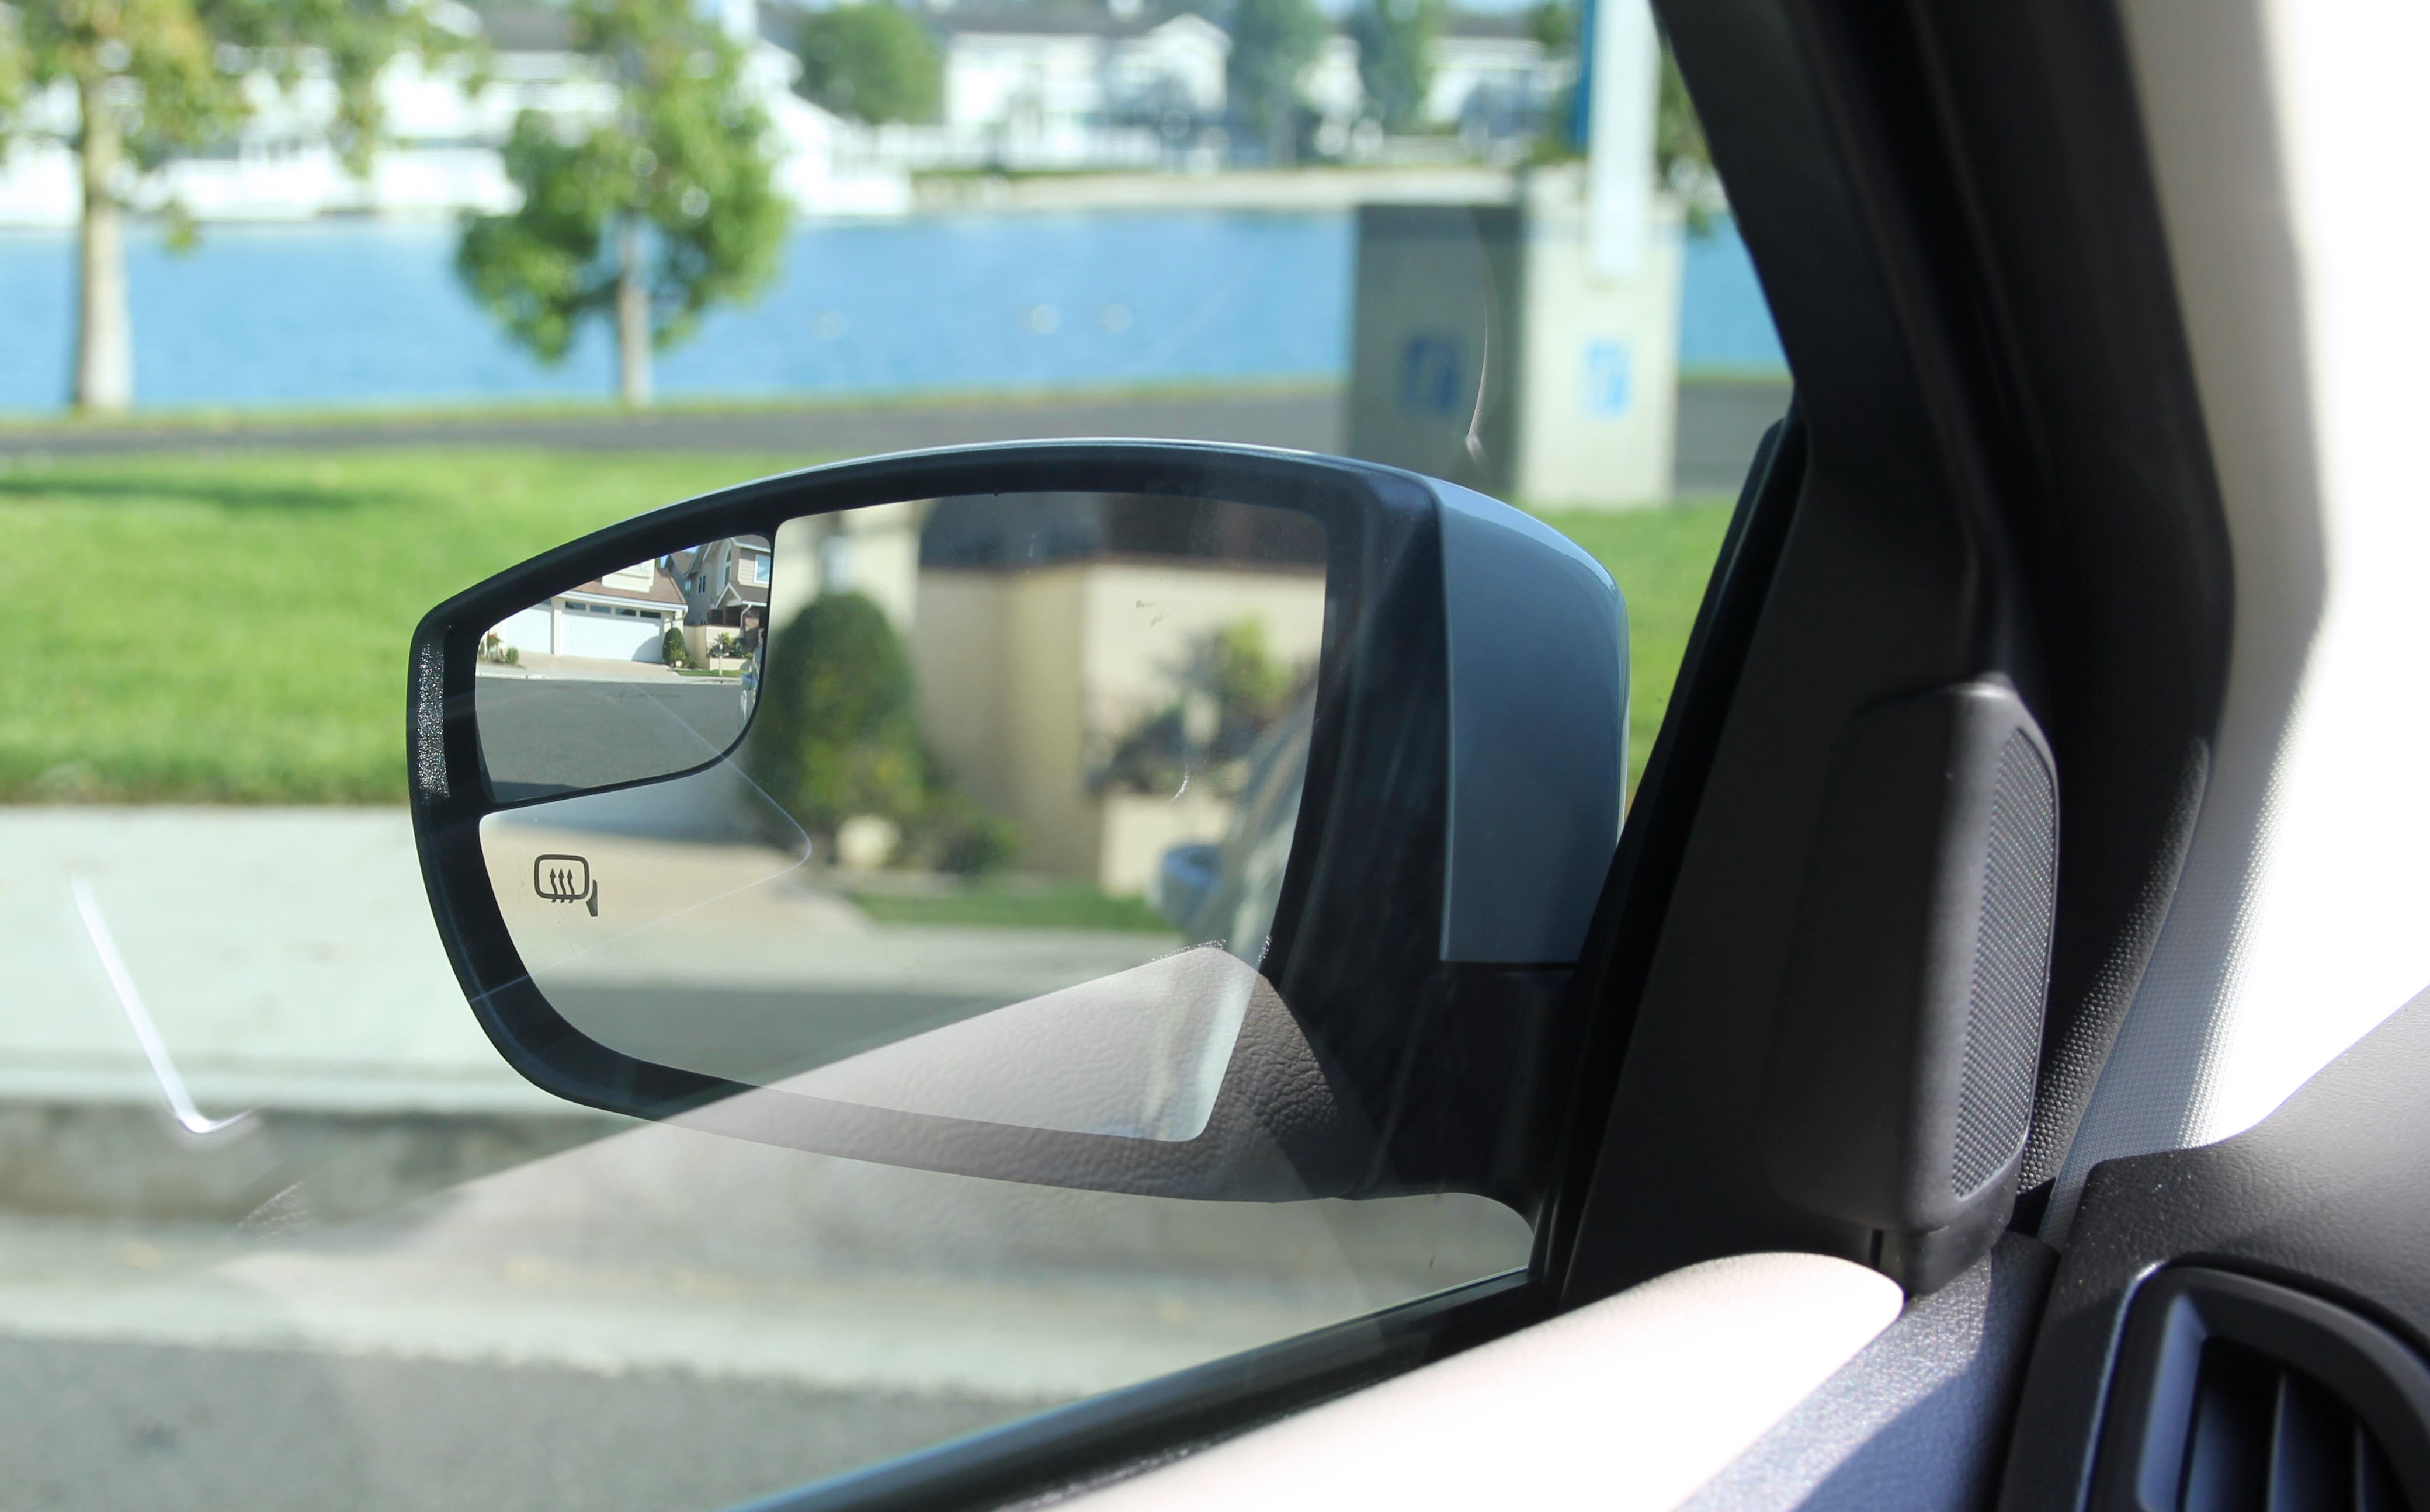 Ford Focus Electric mirror